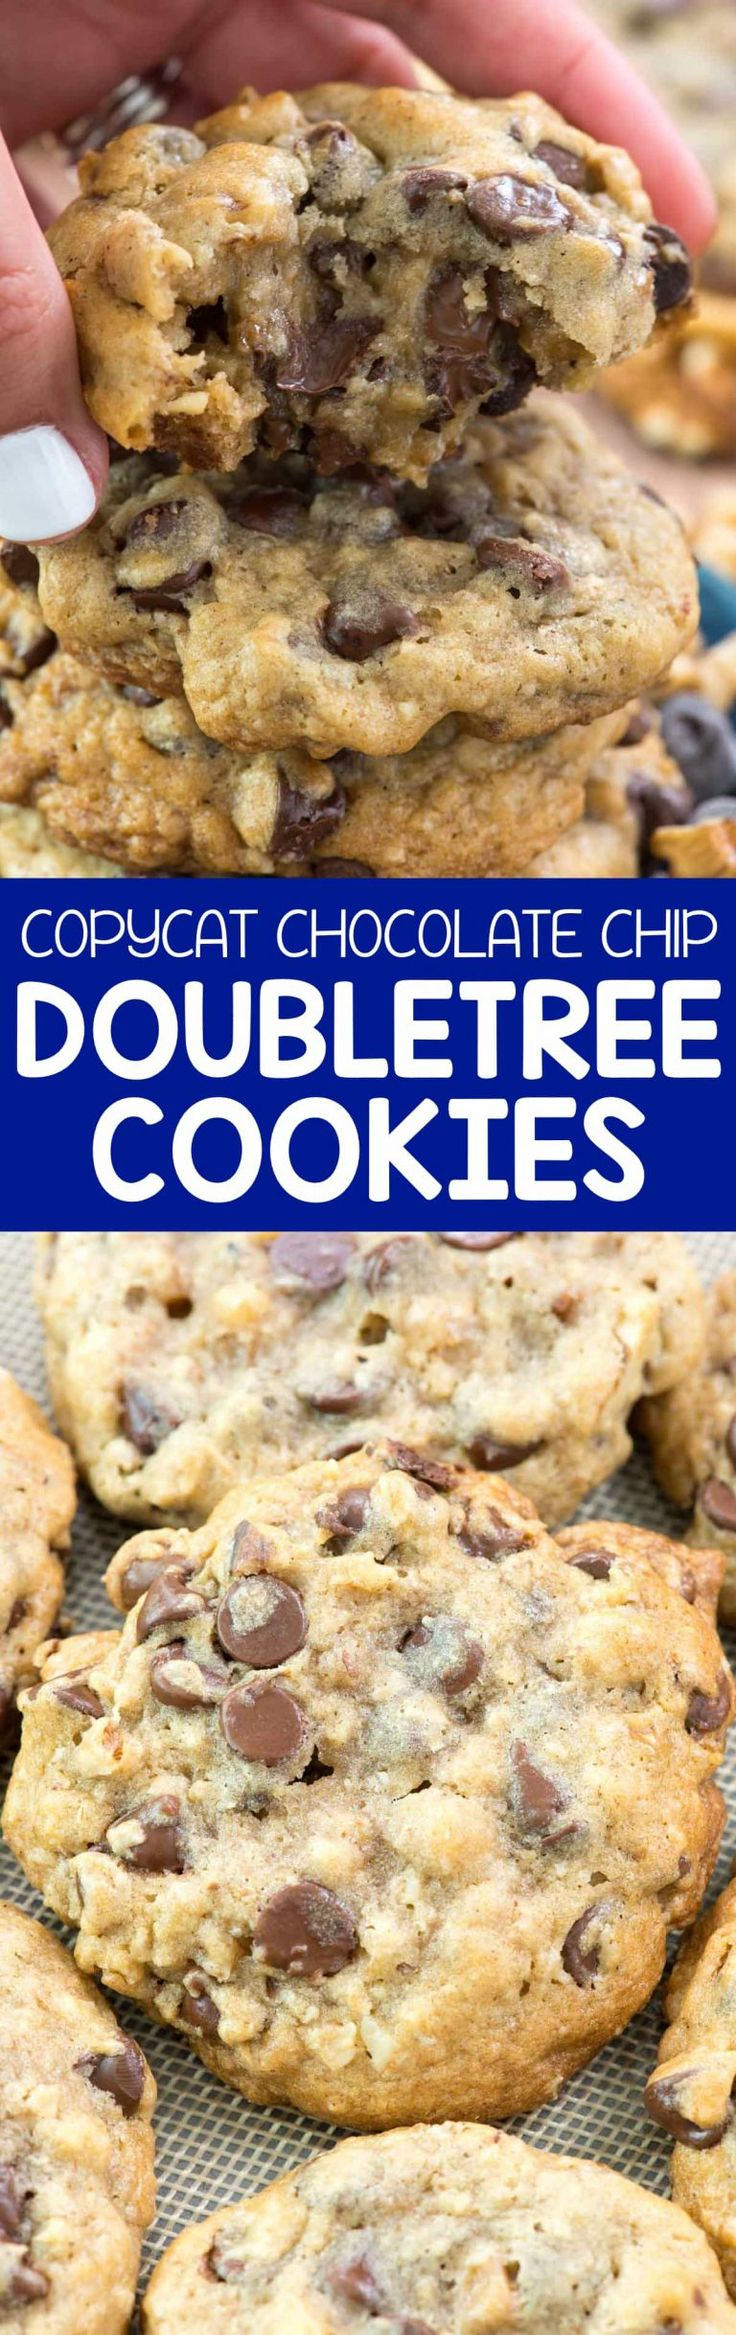 This chocolate chip cookie recipe is even BETTER than the Doubletree Chocolate Chip Cookies!! It's gooey and full of chocolate, oats, and walnuts.